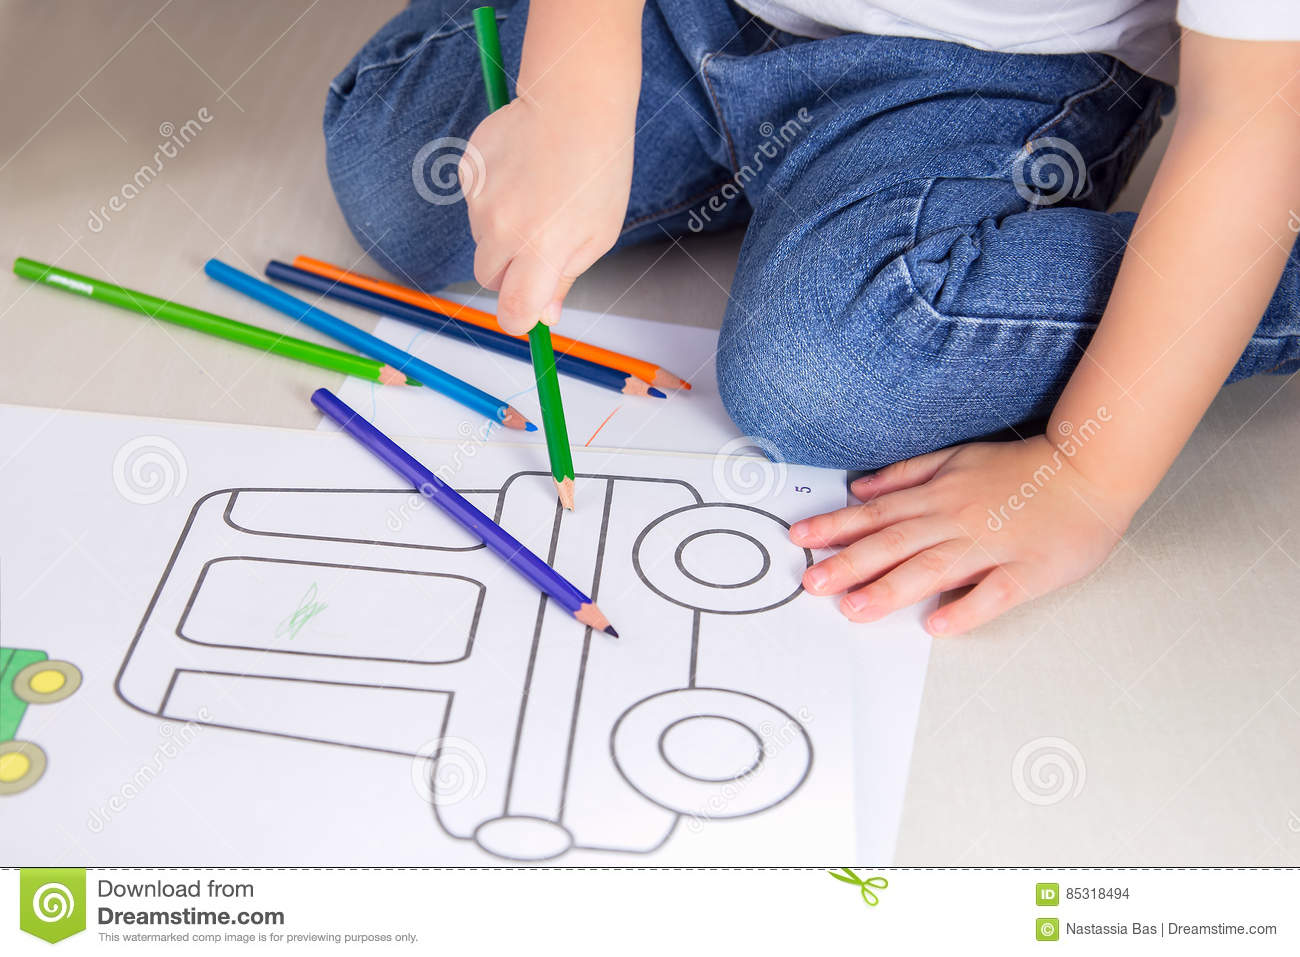 Kid Coloring Paints.Children`s Games At Home Stock Photo - Image of ...